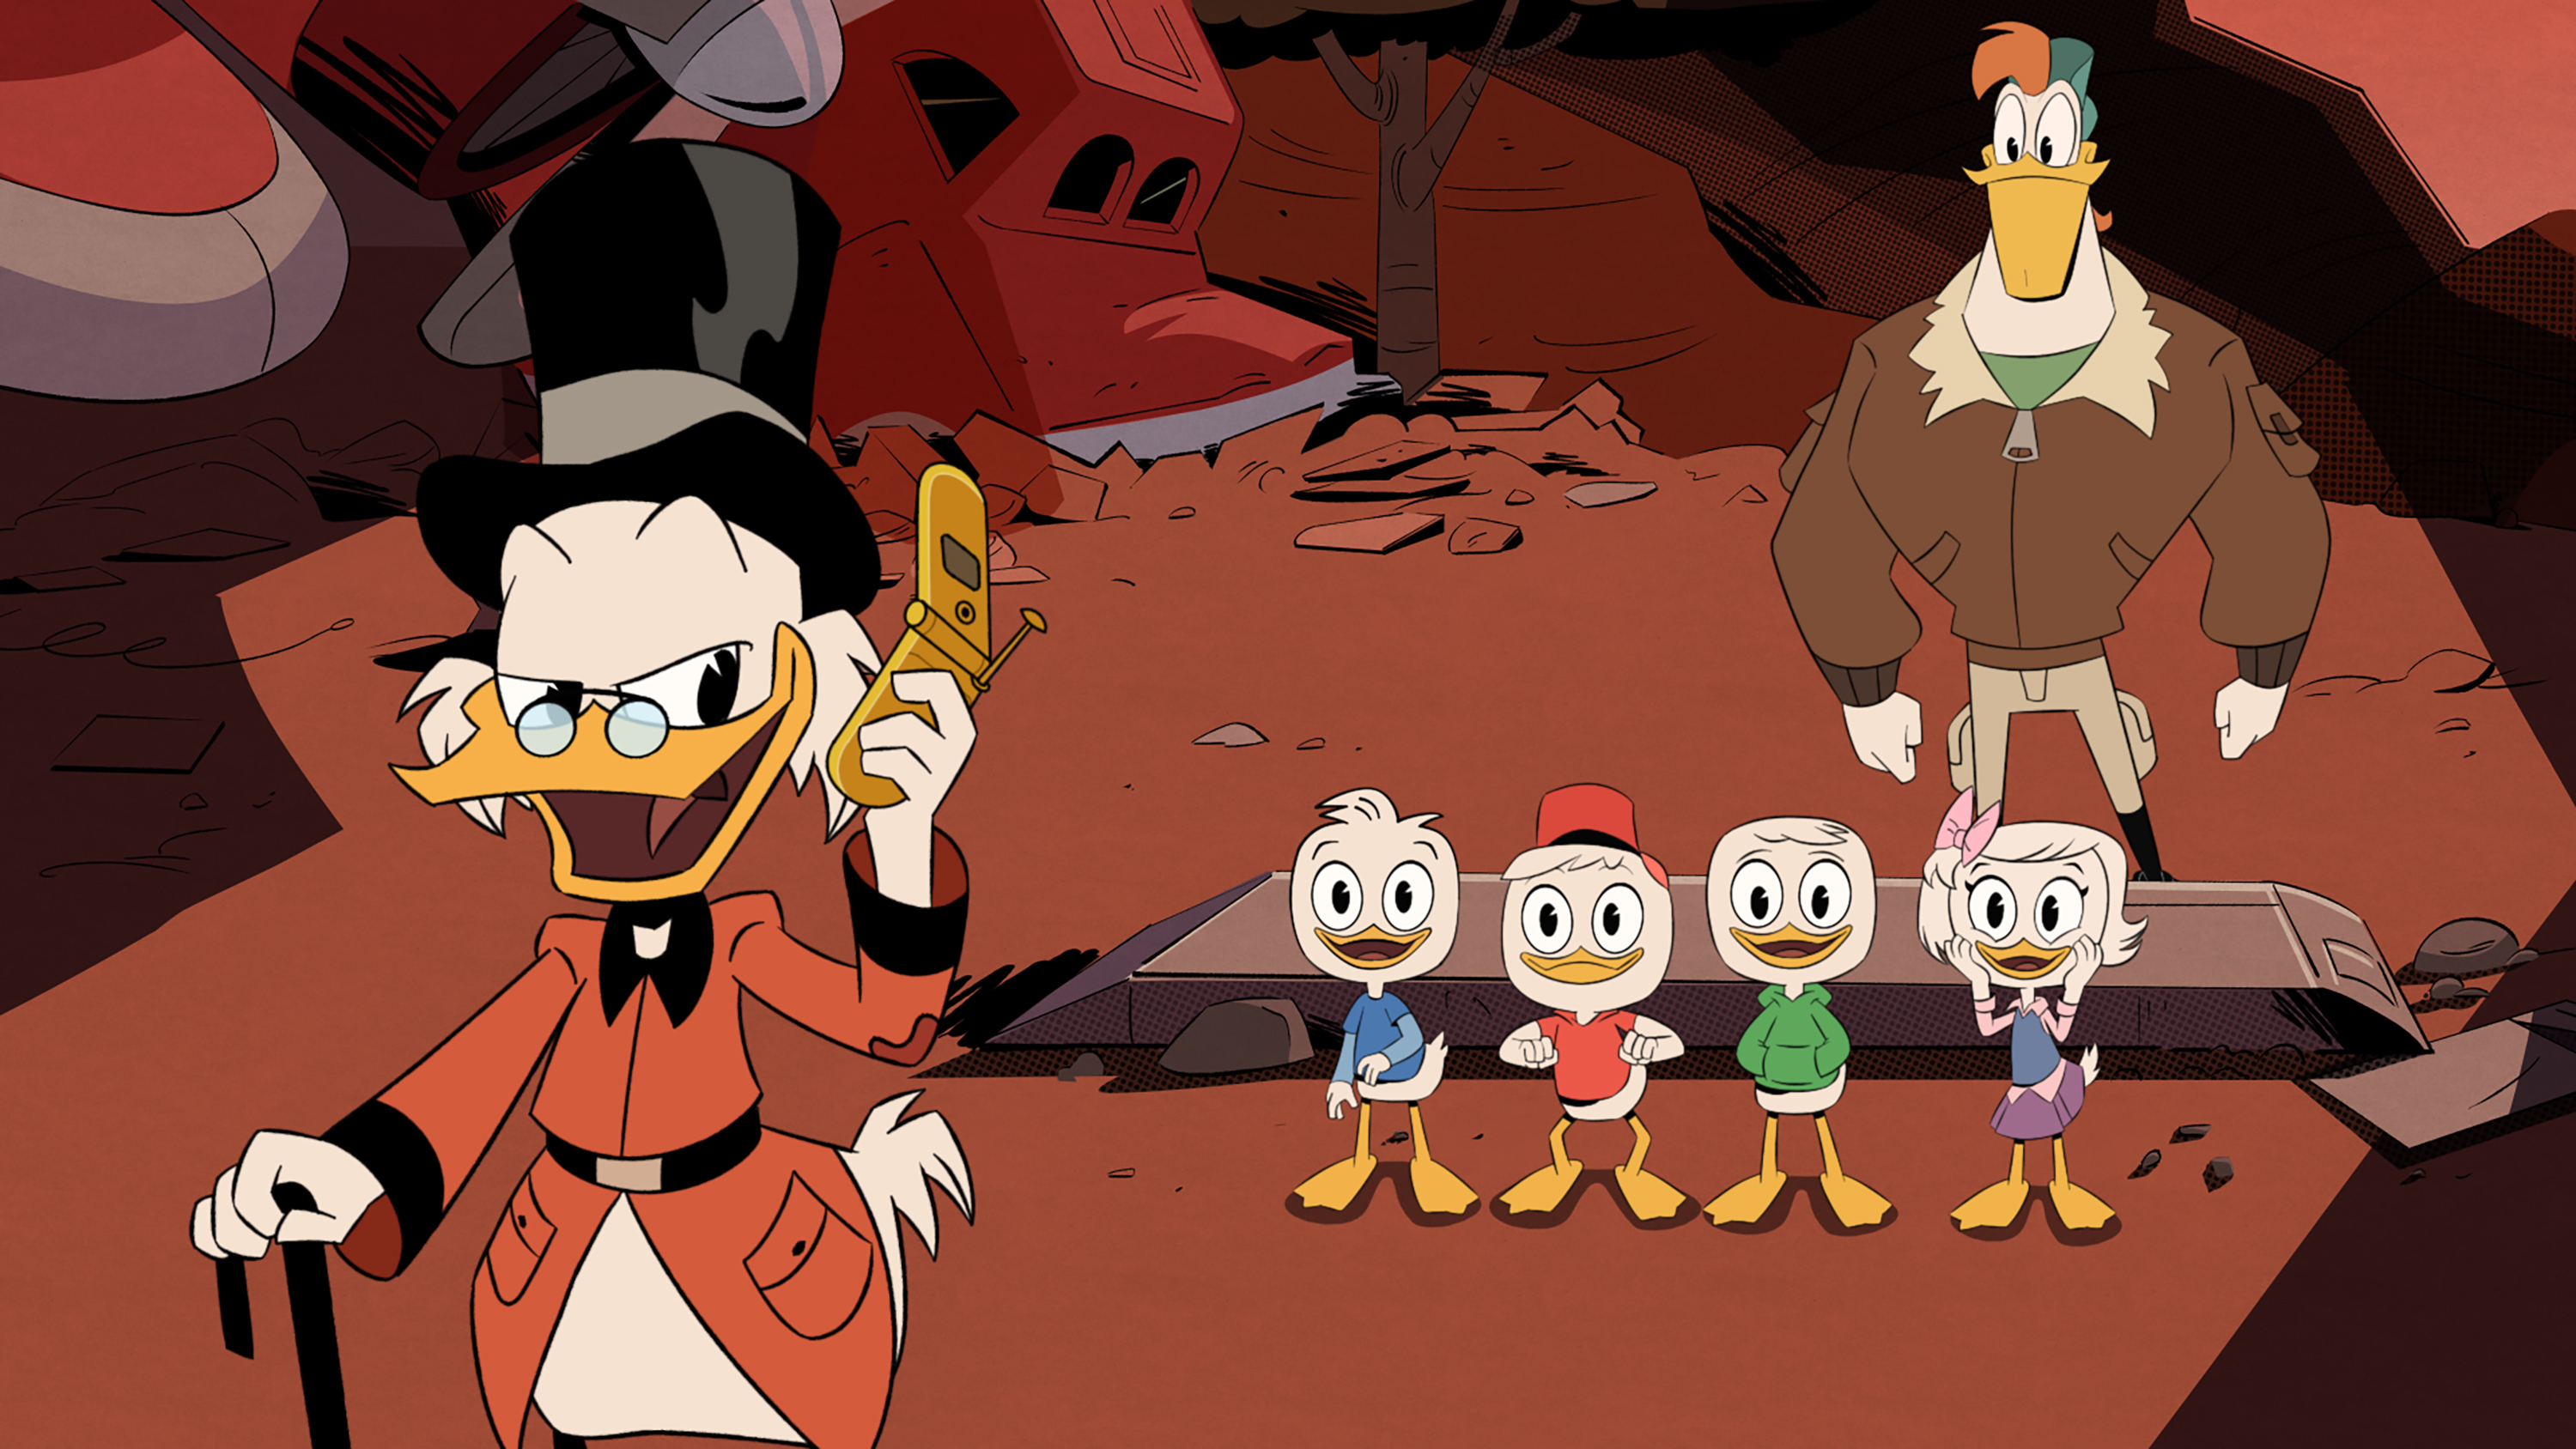 """DUCKTALES Ð """"Woo-oo!"""" - Donald Duck reluctantly takes his nephews Huey, Dewey and Louie to the home of their reclusive great-uncle Scrooge McDuck. Enthralled by their once legendary great-uncle and the wonder of McDuck Manor, the triplets and their newfound fierce friend Webby learn of long-kept family secrets and unleash totems from ScroogeÕs epic past, sending the family on an adventure of a lifetime to the Lost City of Atlantis. """"DuckTales"""" premieres in a one-hour television movie to be presented for 24 consecutive hours, SATURDAY, AUGUST 12 (beginning at midnight EDT/PDT), on Disney XD. (Disney XD) SCROOGE MCDUCK, DEWEY, HUEY, LOUIE, WEBBY VANDERQUACK, LAUNCHPAD MCQUACK"""